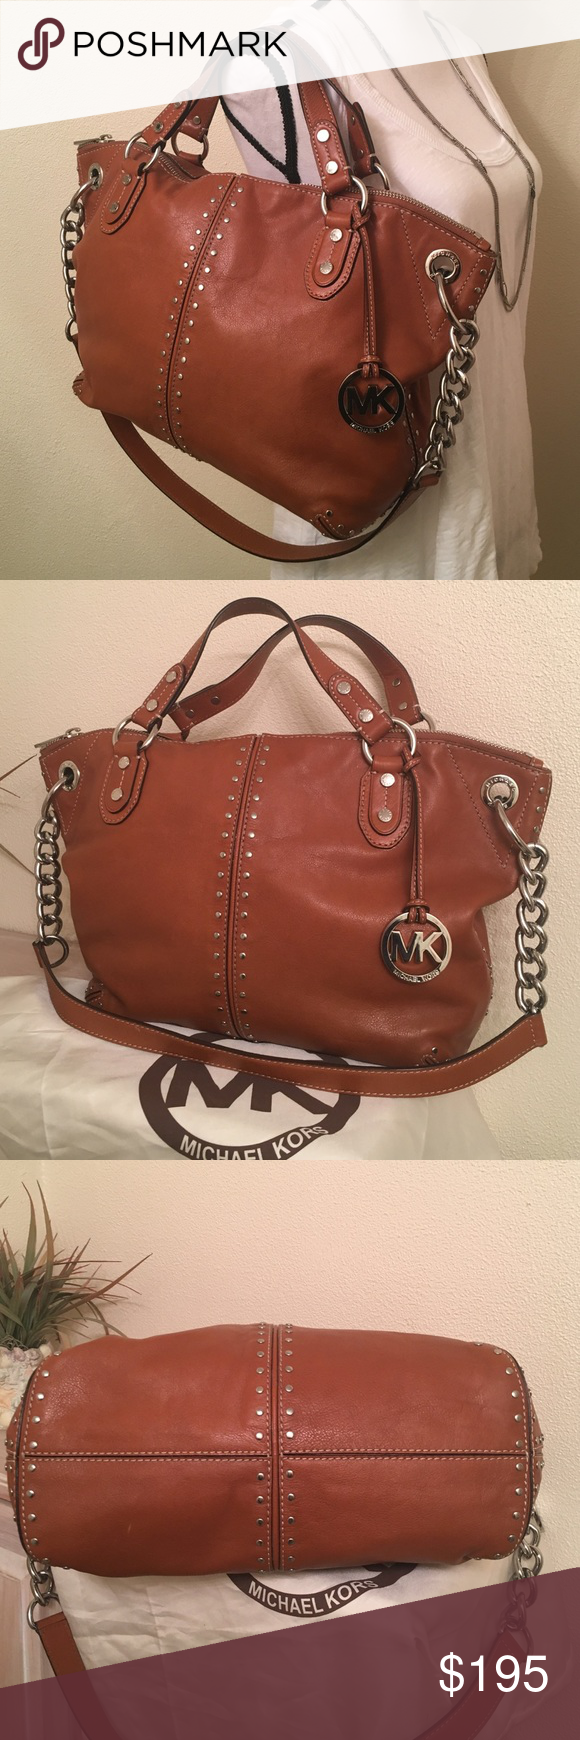 cf35e7df22c0 Spotted while shopping on Poshmark  Michael Kors Uptown Astor Satchel in  luggage.!